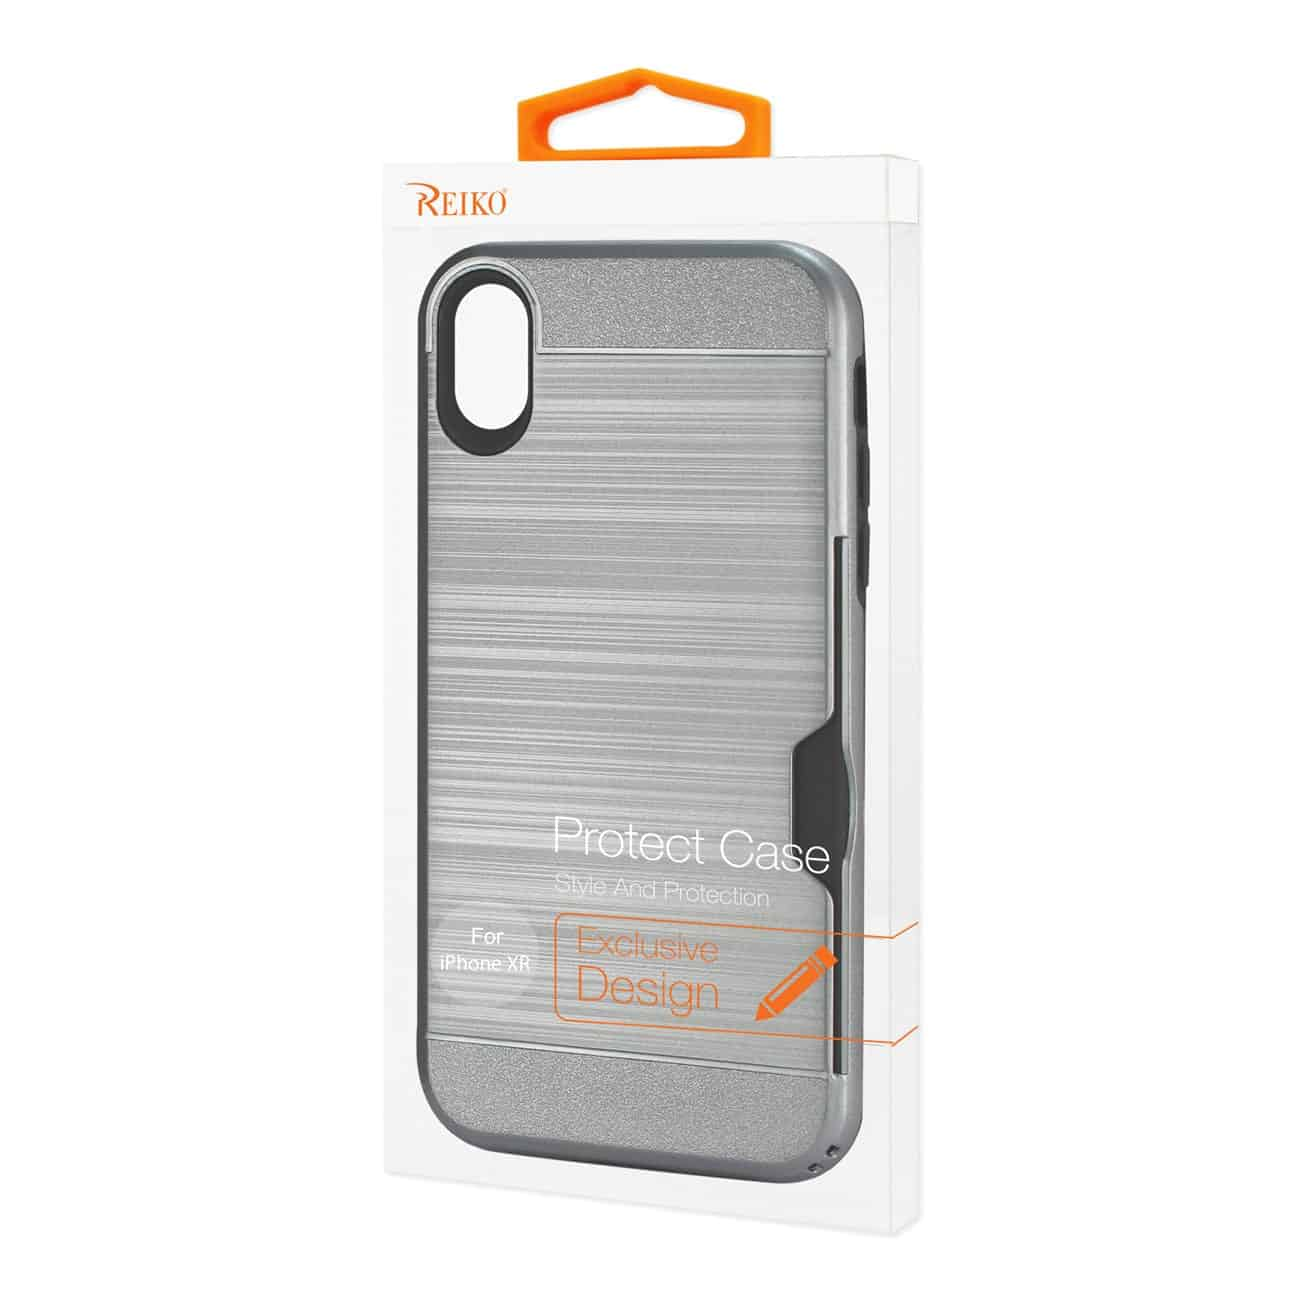 iPhone XR Slim Armor Hybrid Case With Card Holder In Gray